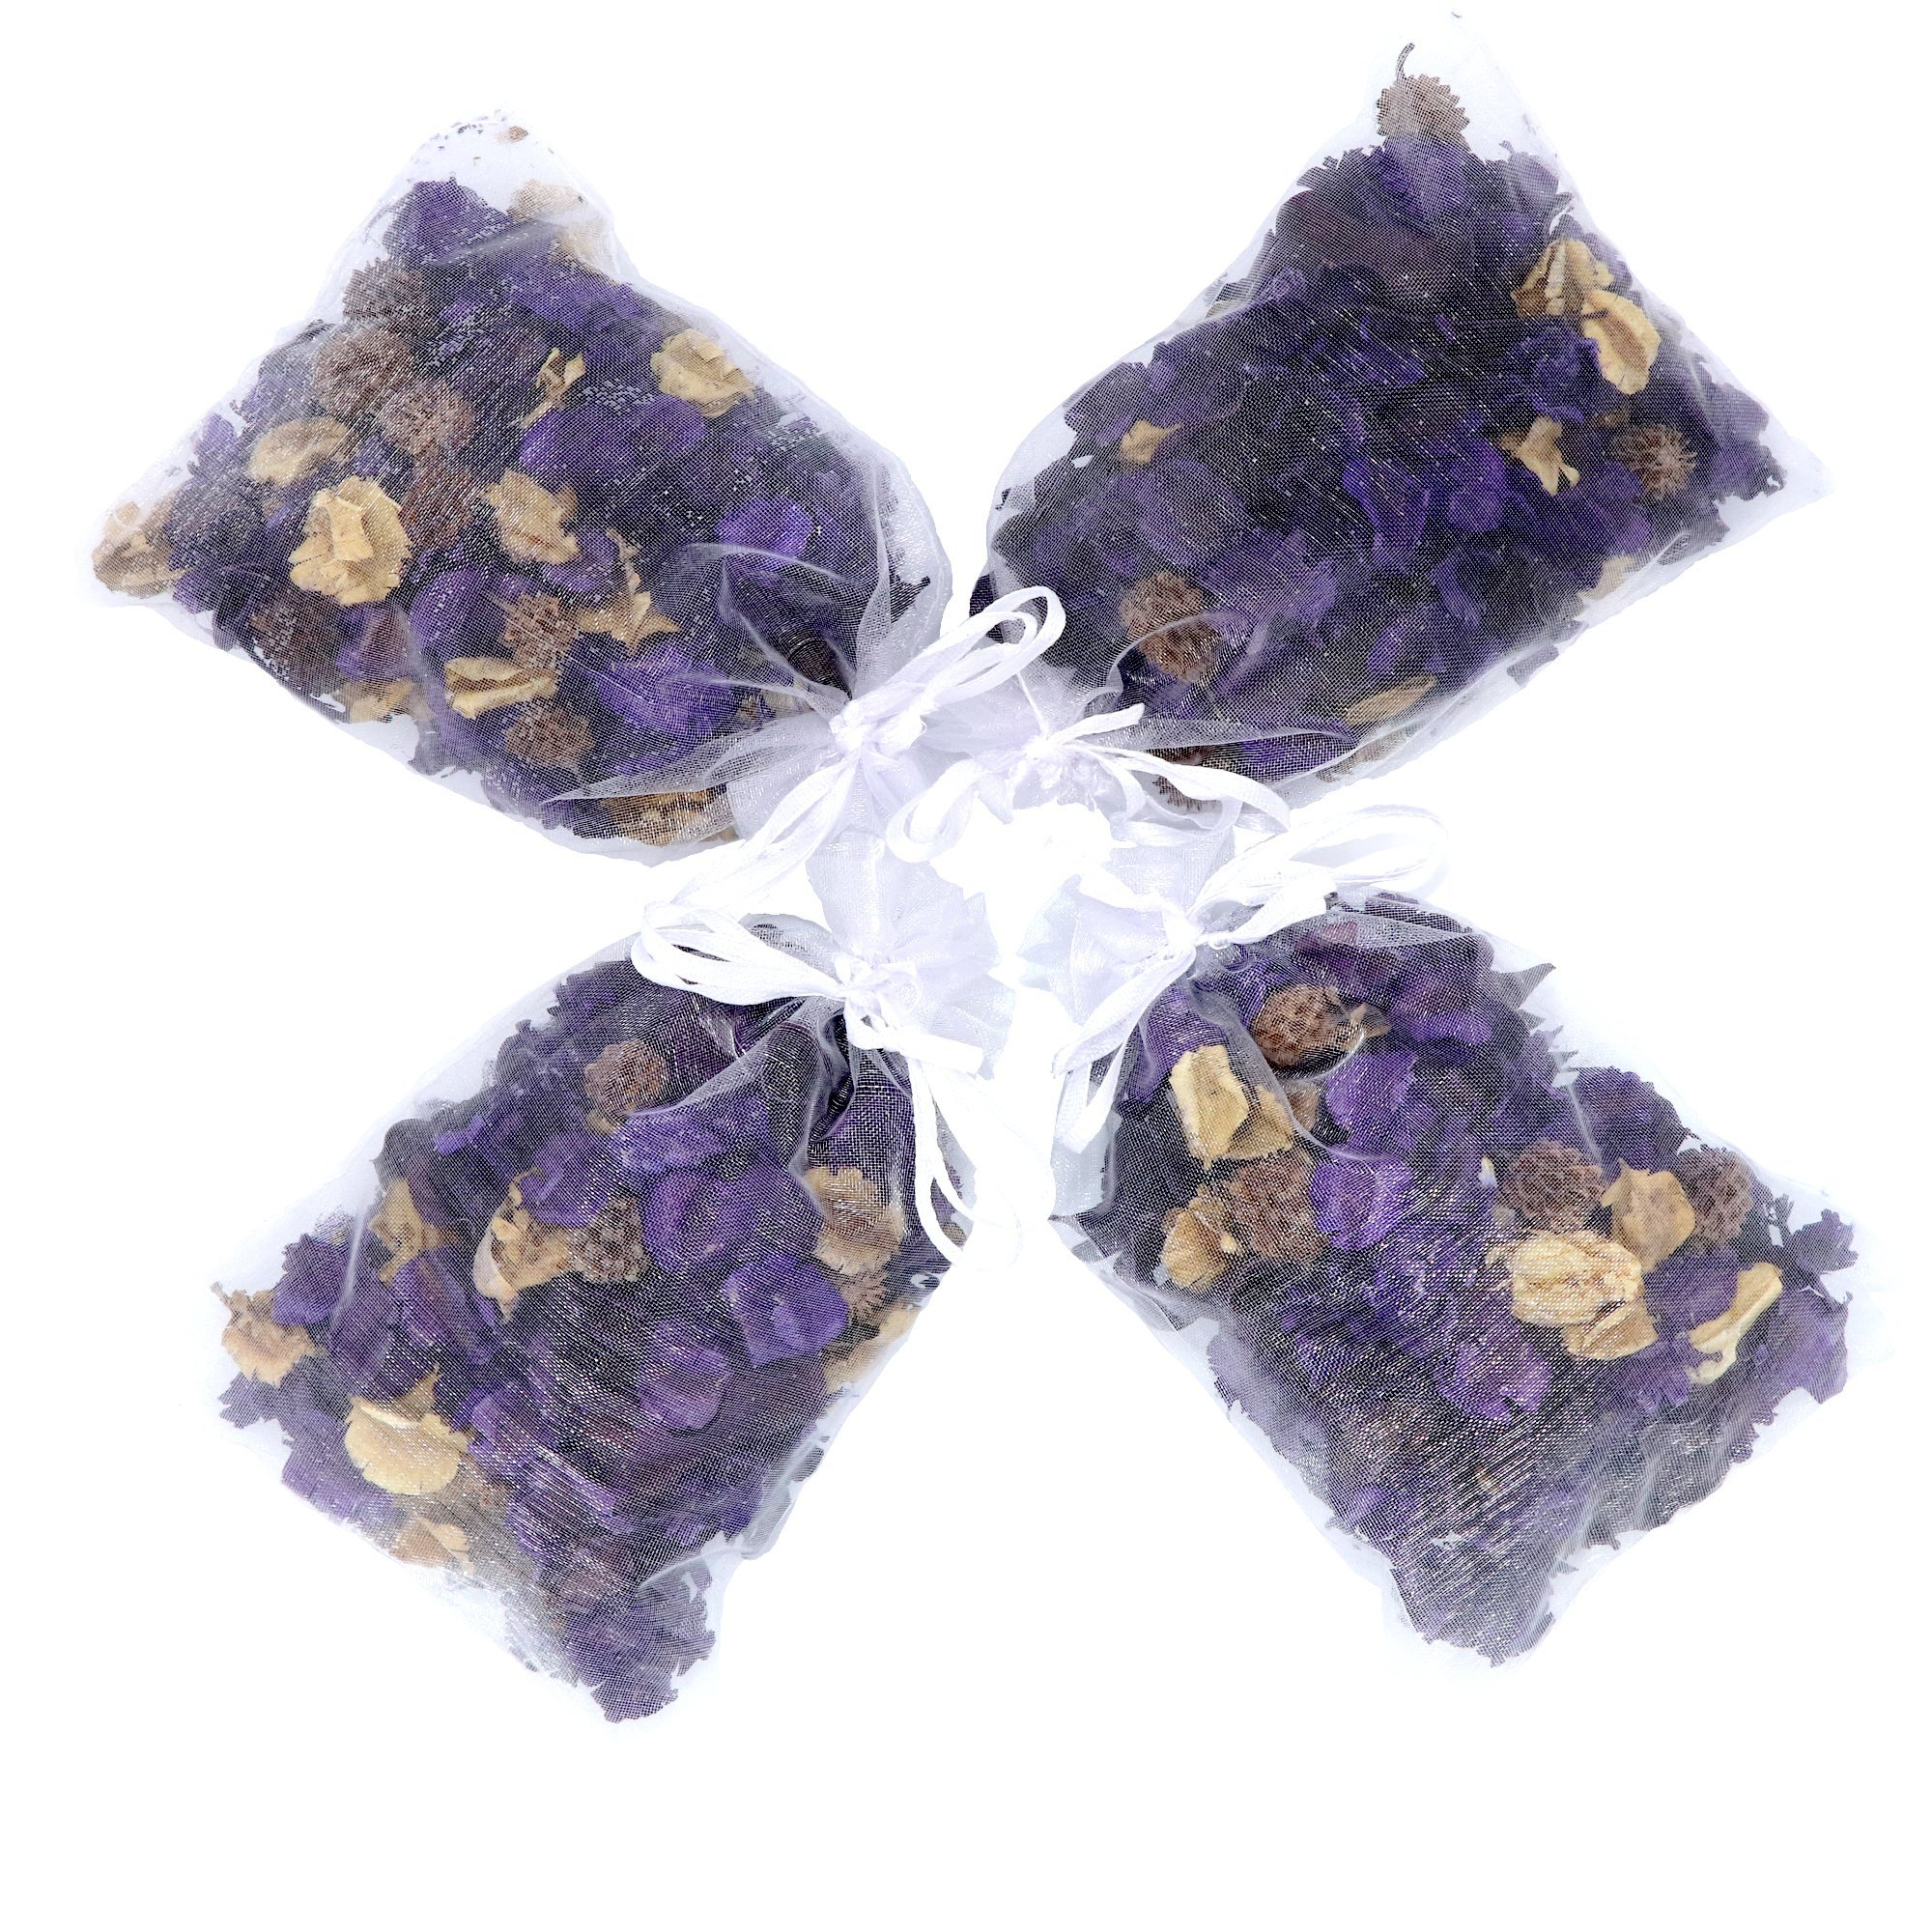 The Ambient Collection Lavender Scent Potpourri 20 g organza bag x 4 by The Ambient Collection (Image #1)